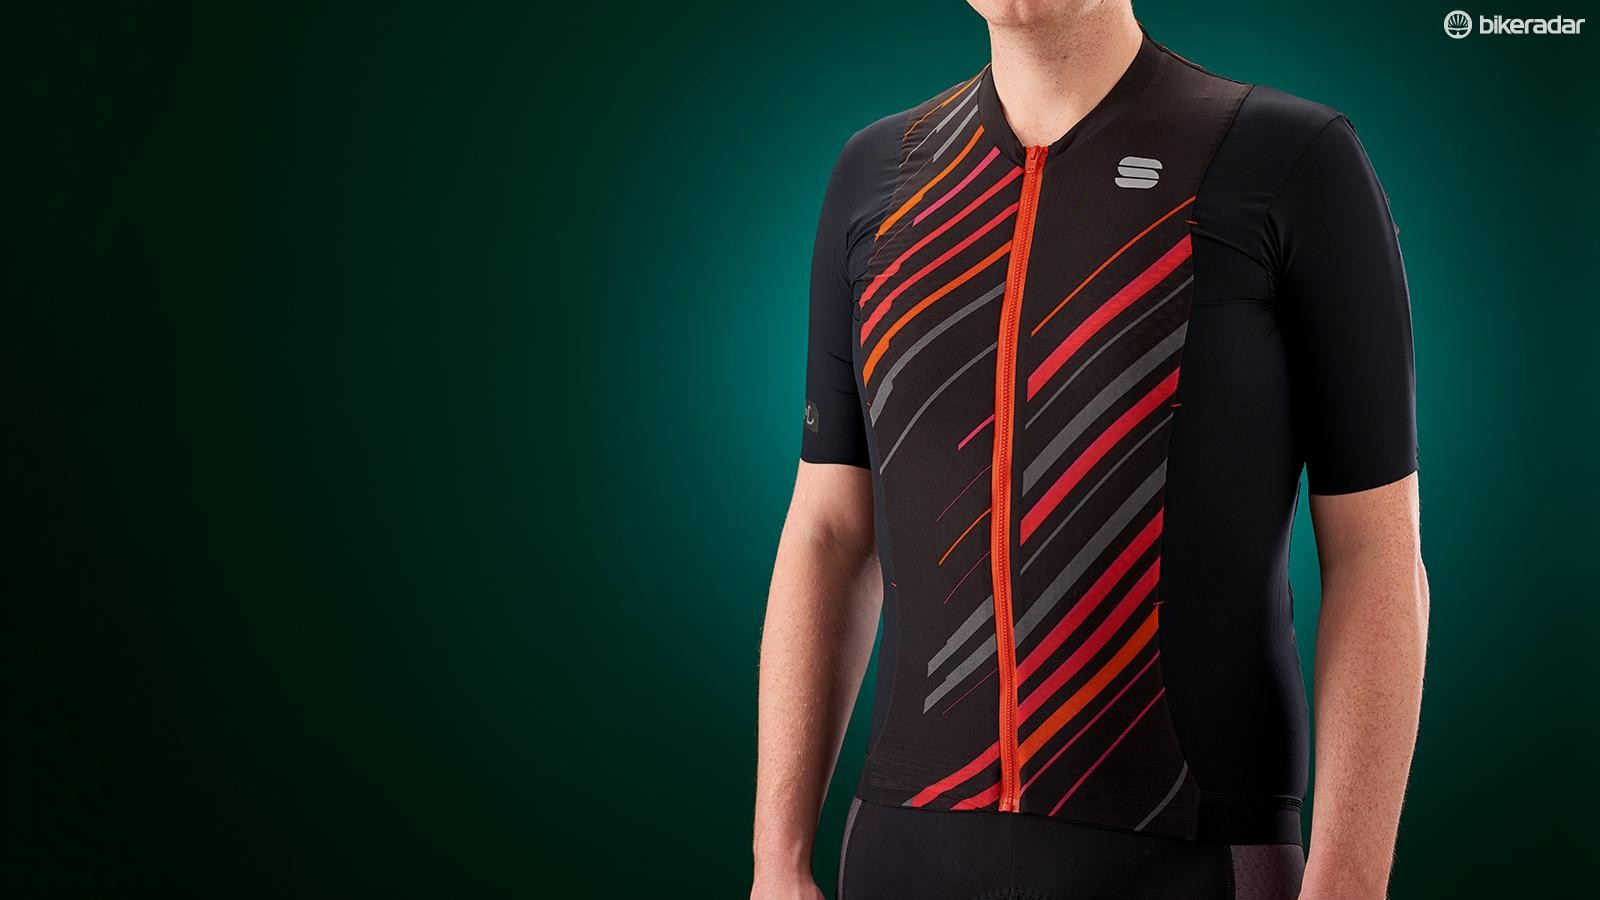 Versatile jersey, seemingly suitable for every occasion